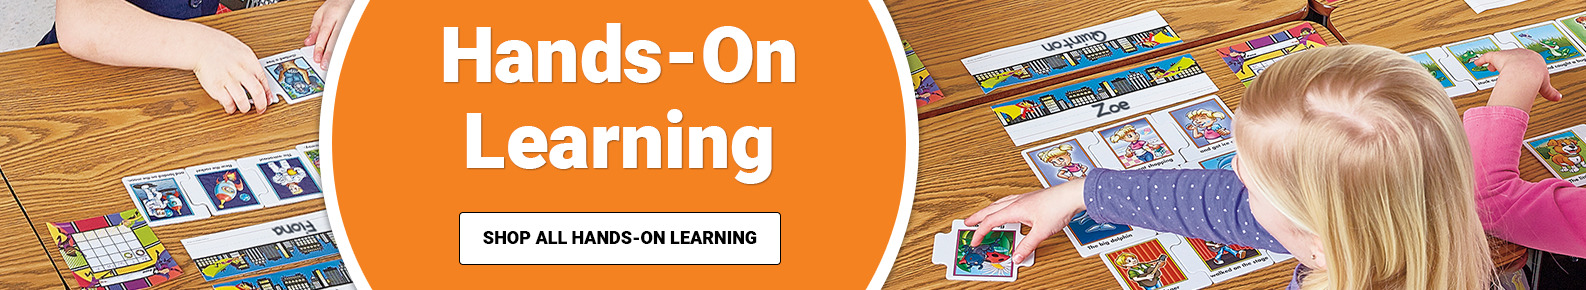 Hands-On Learning for children in the classroom